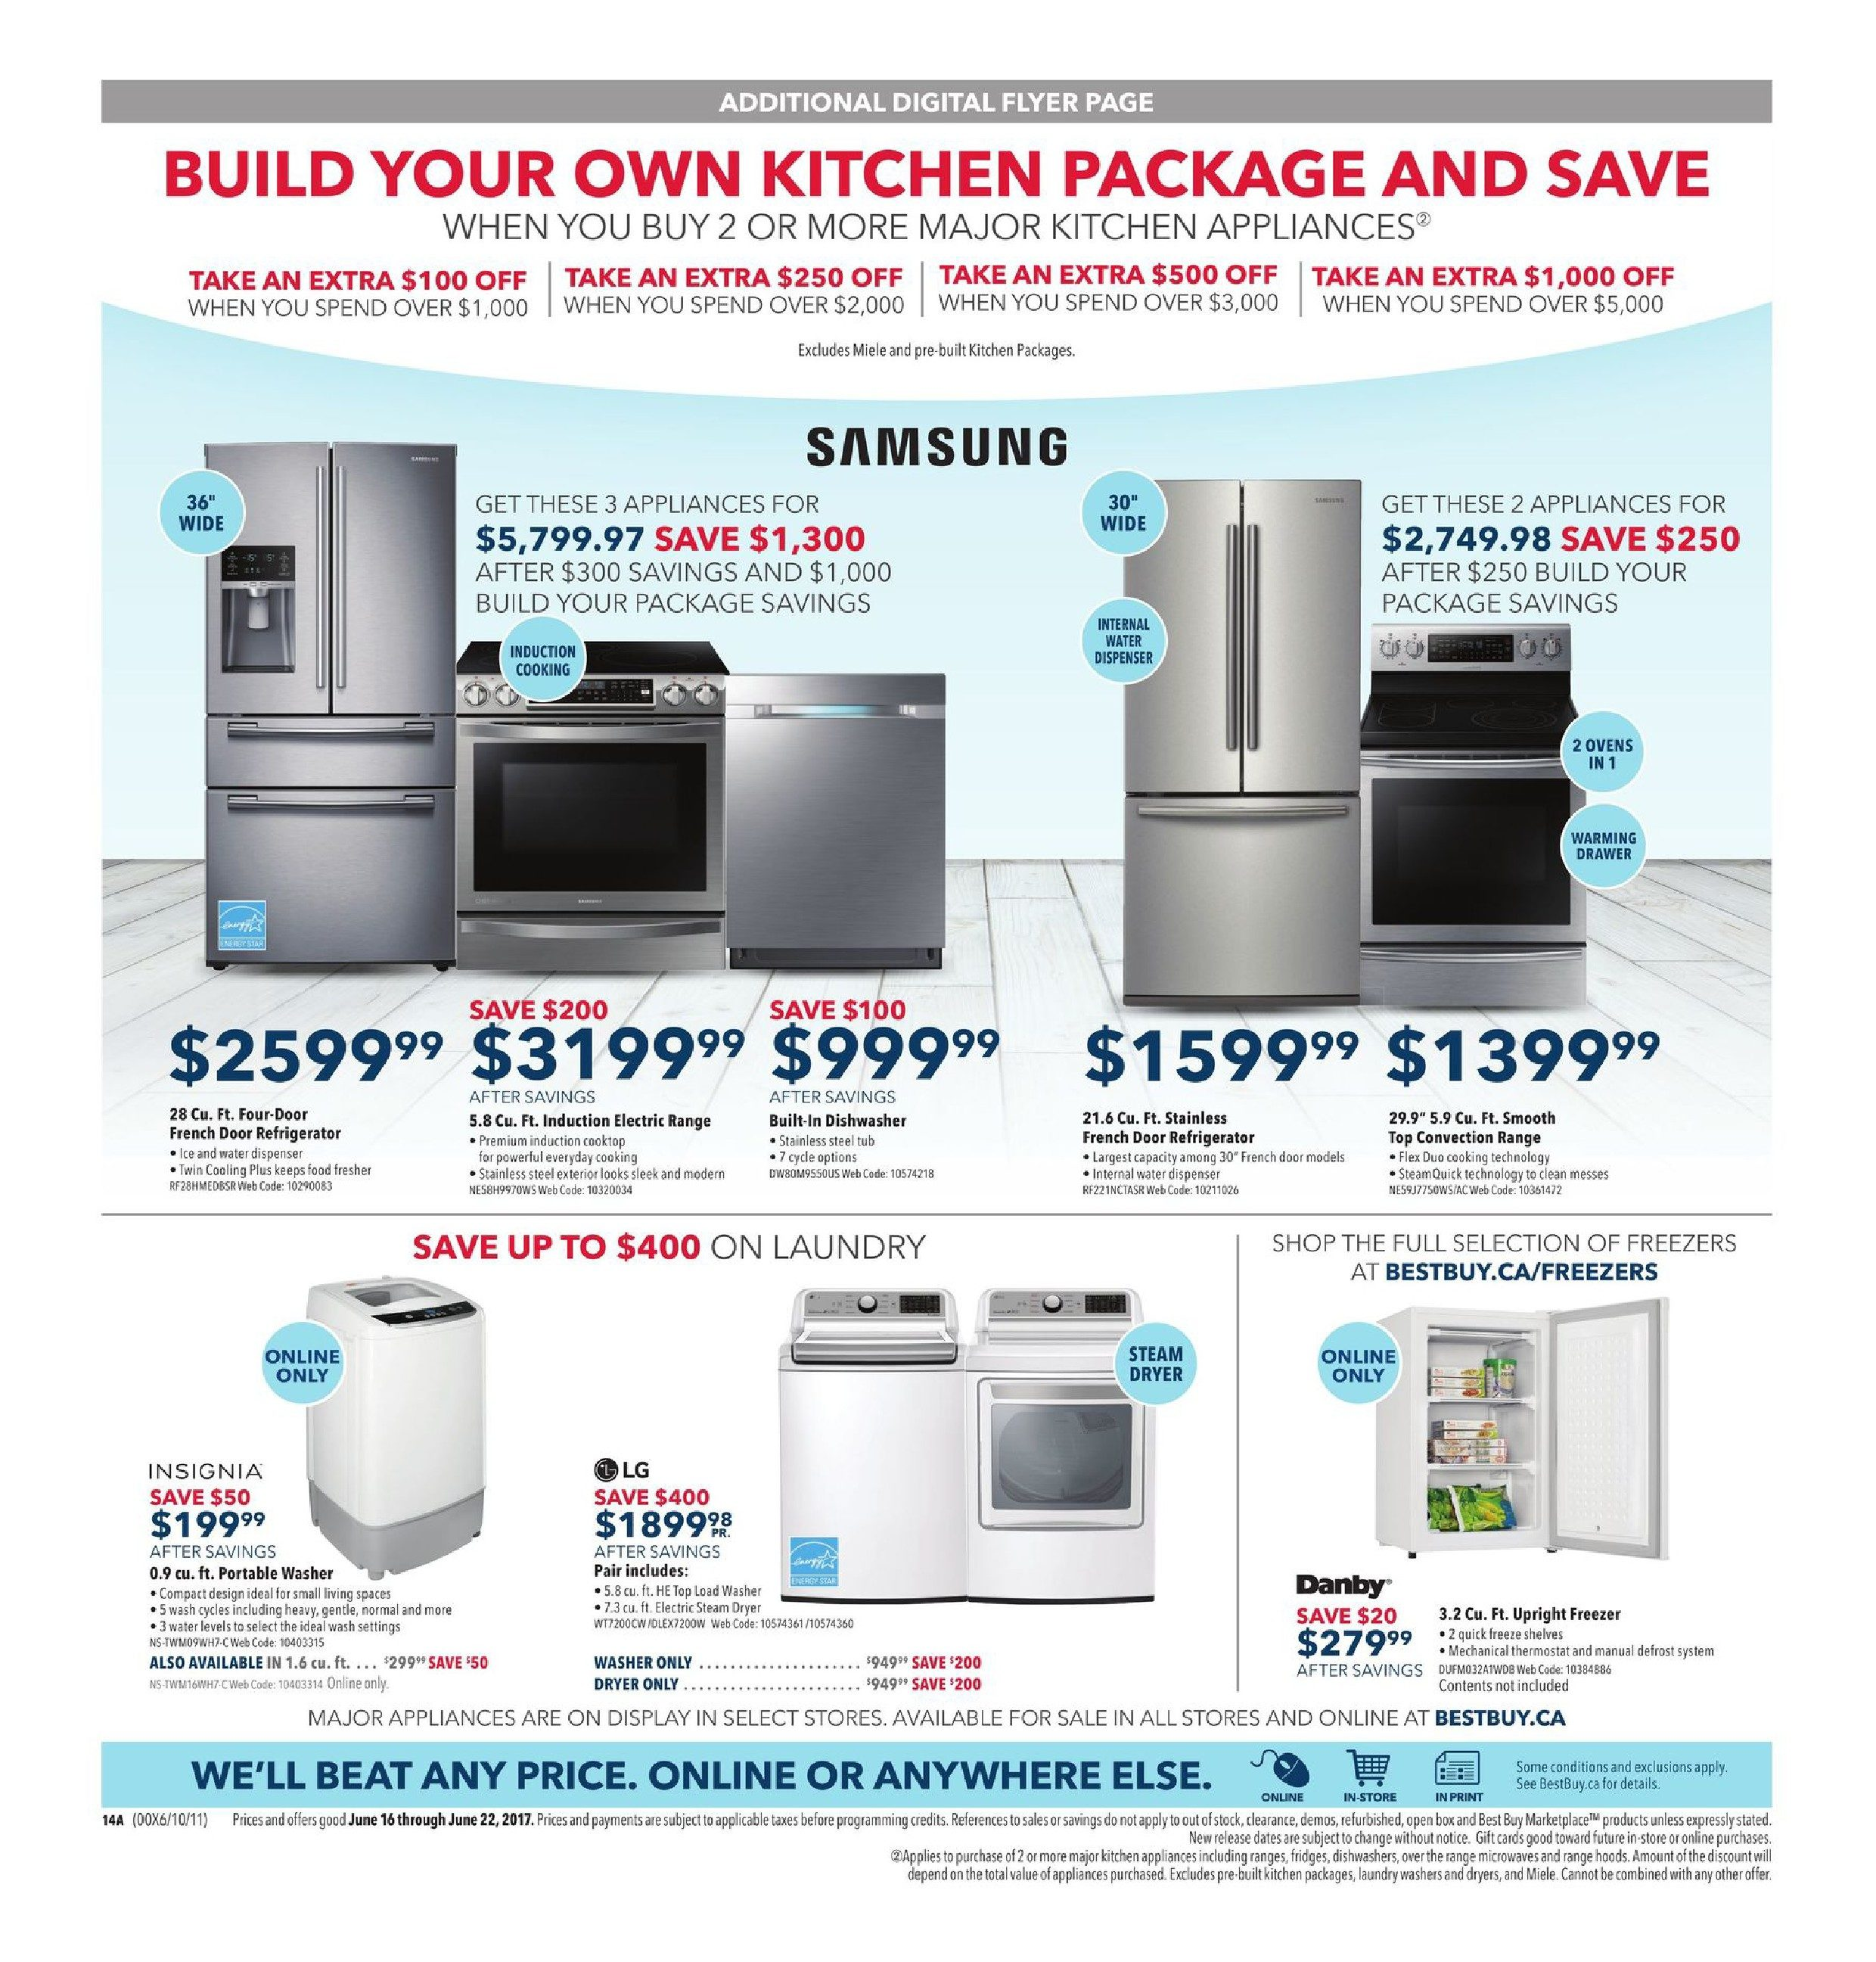 Best buy weekly flyer weekly save big on the perfect gifts jun best buy weekly flyer weekly save big on the perfect gifts jun 16 22 redflagdeals fandeluxe Image collections